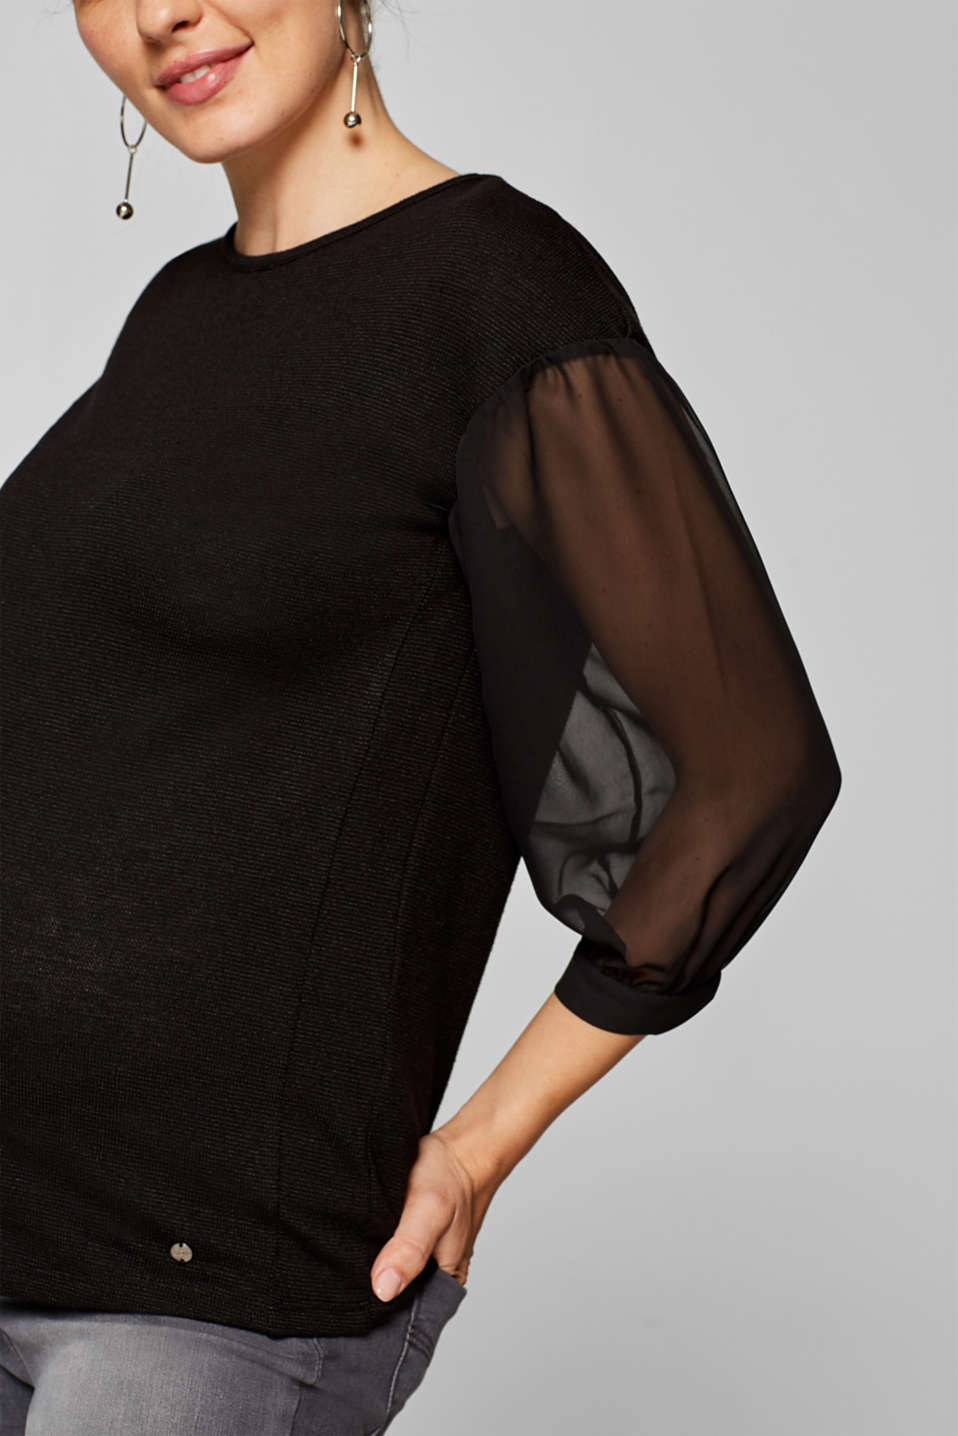 Textured top with chiffon sleeves, LCBLACK, detail image number 1